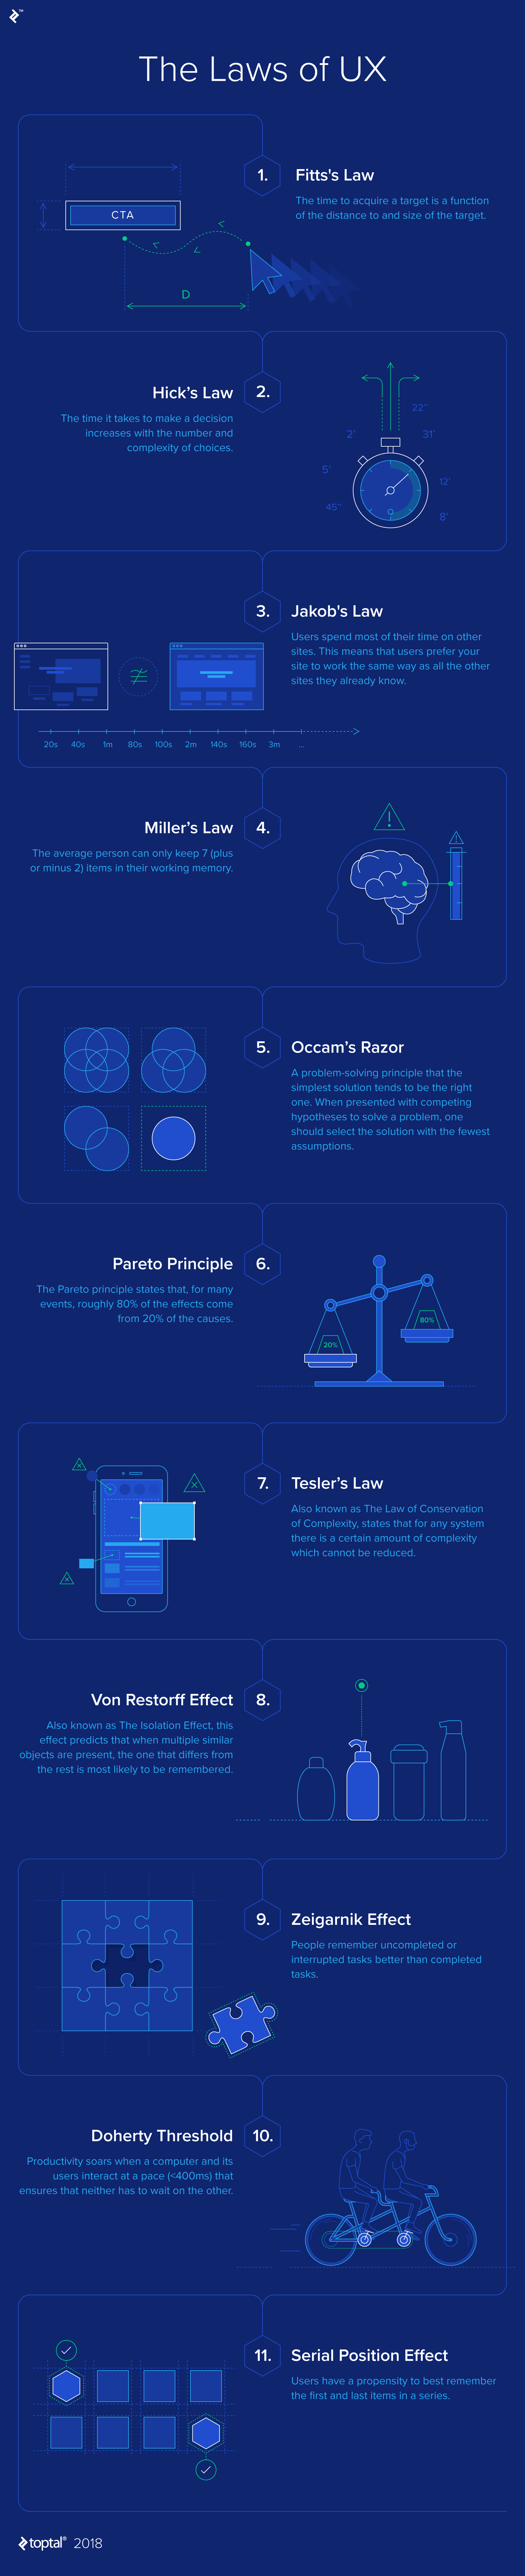 The Laws of UX infographic